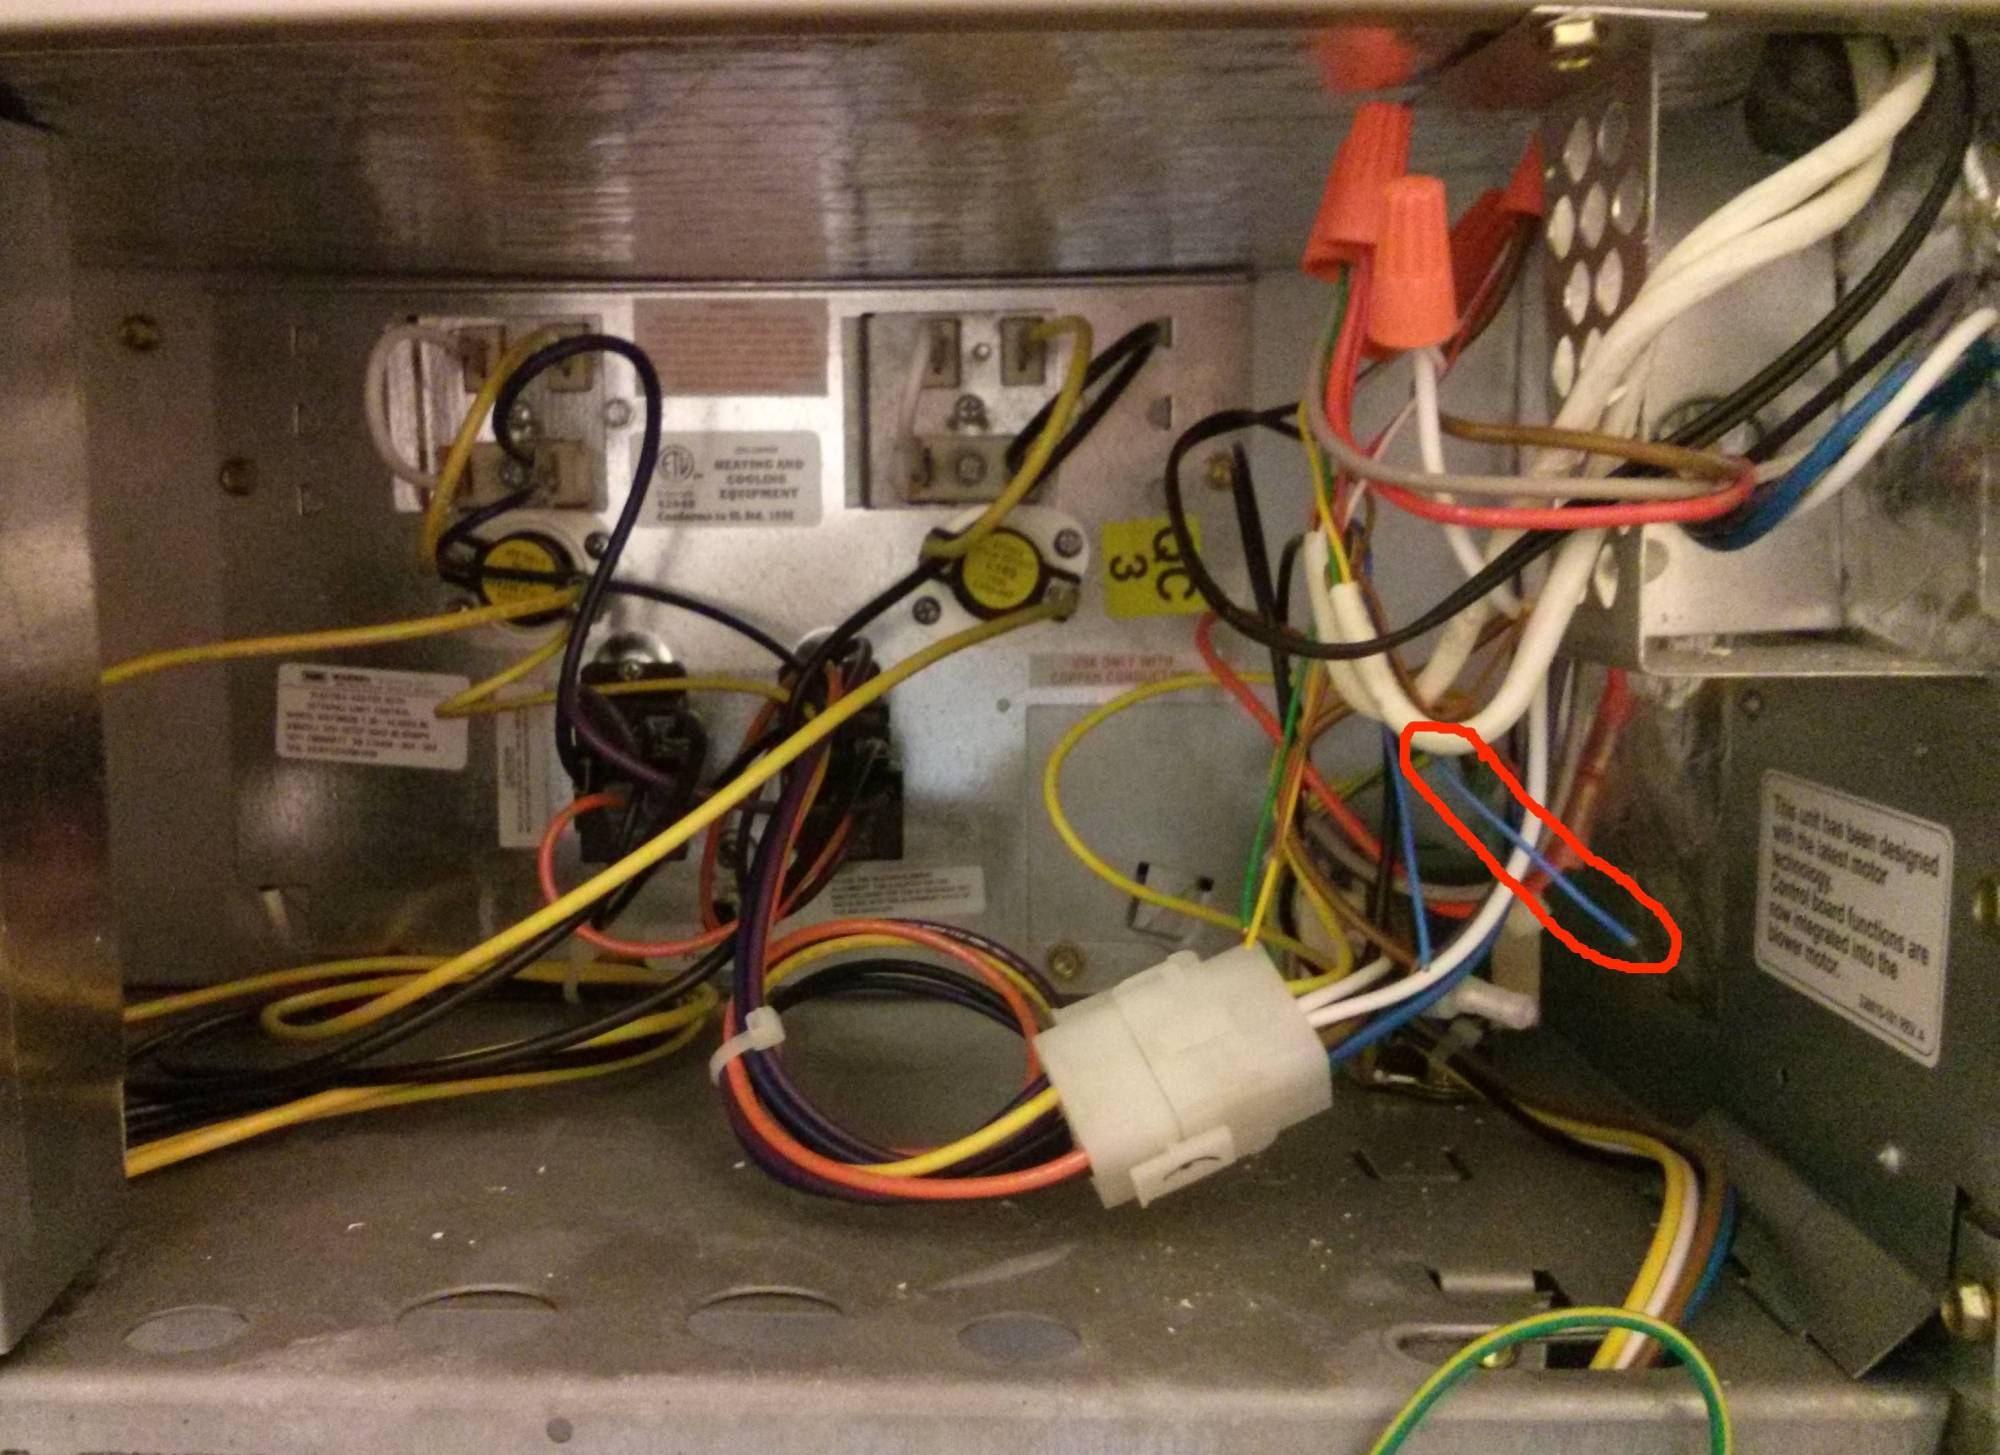 hight resolution of wiring how do i connect the common wire in a carrier air handler ruud air handler wiring diagram carrier air handler wiring diagrams